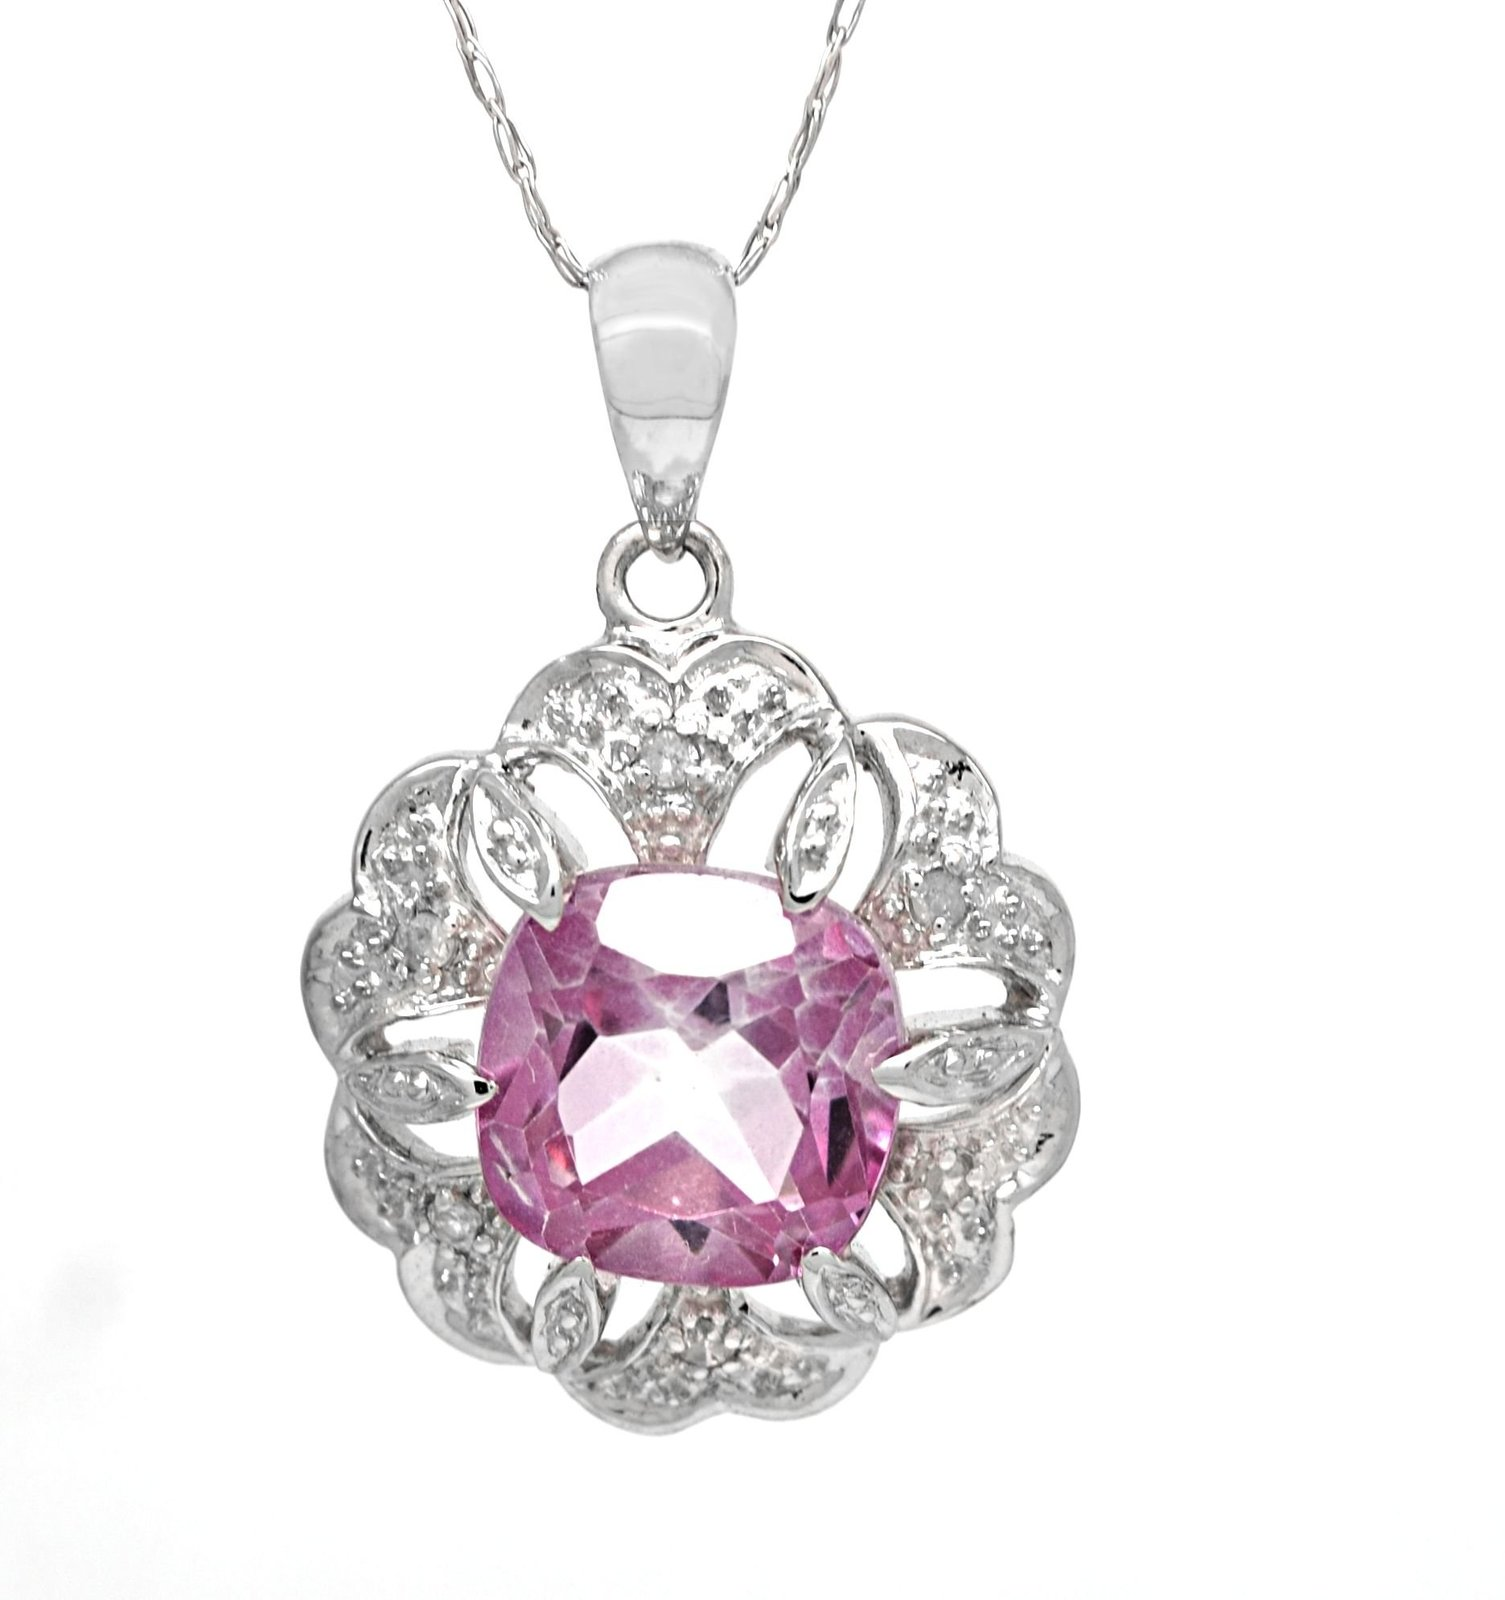 14K Genuine Pink Topaz White Gold Pendant with 10 K Cable Chain